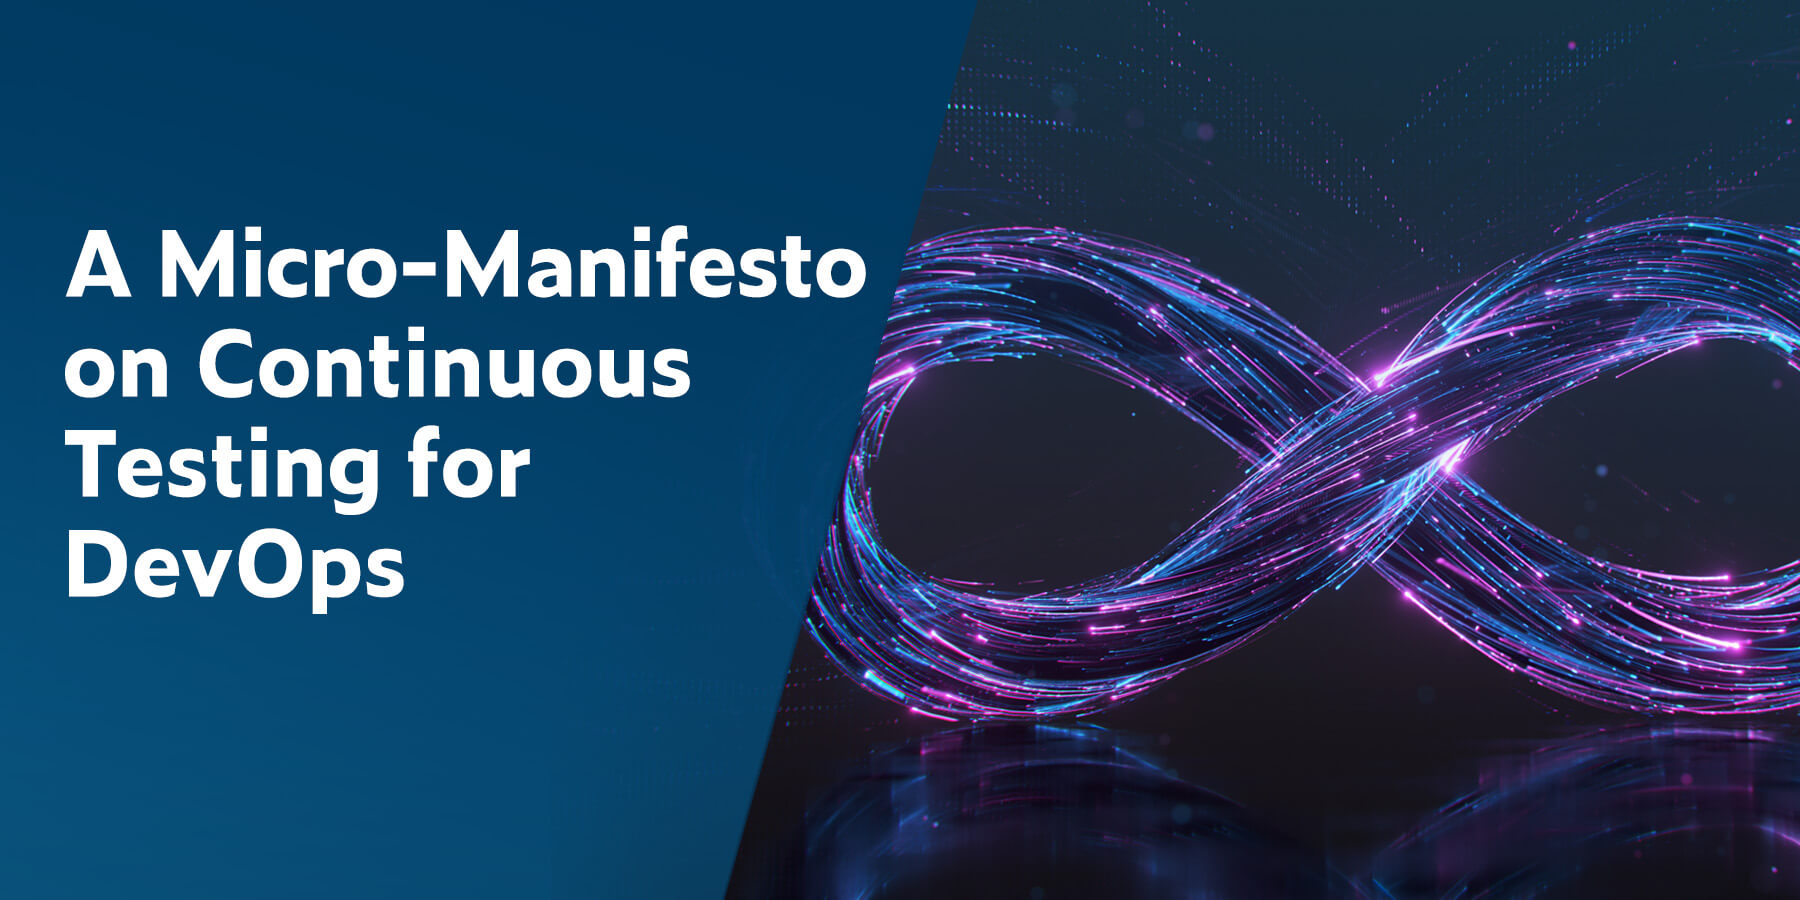 A Micro-Manifesto on Continuous Testing for DevOps